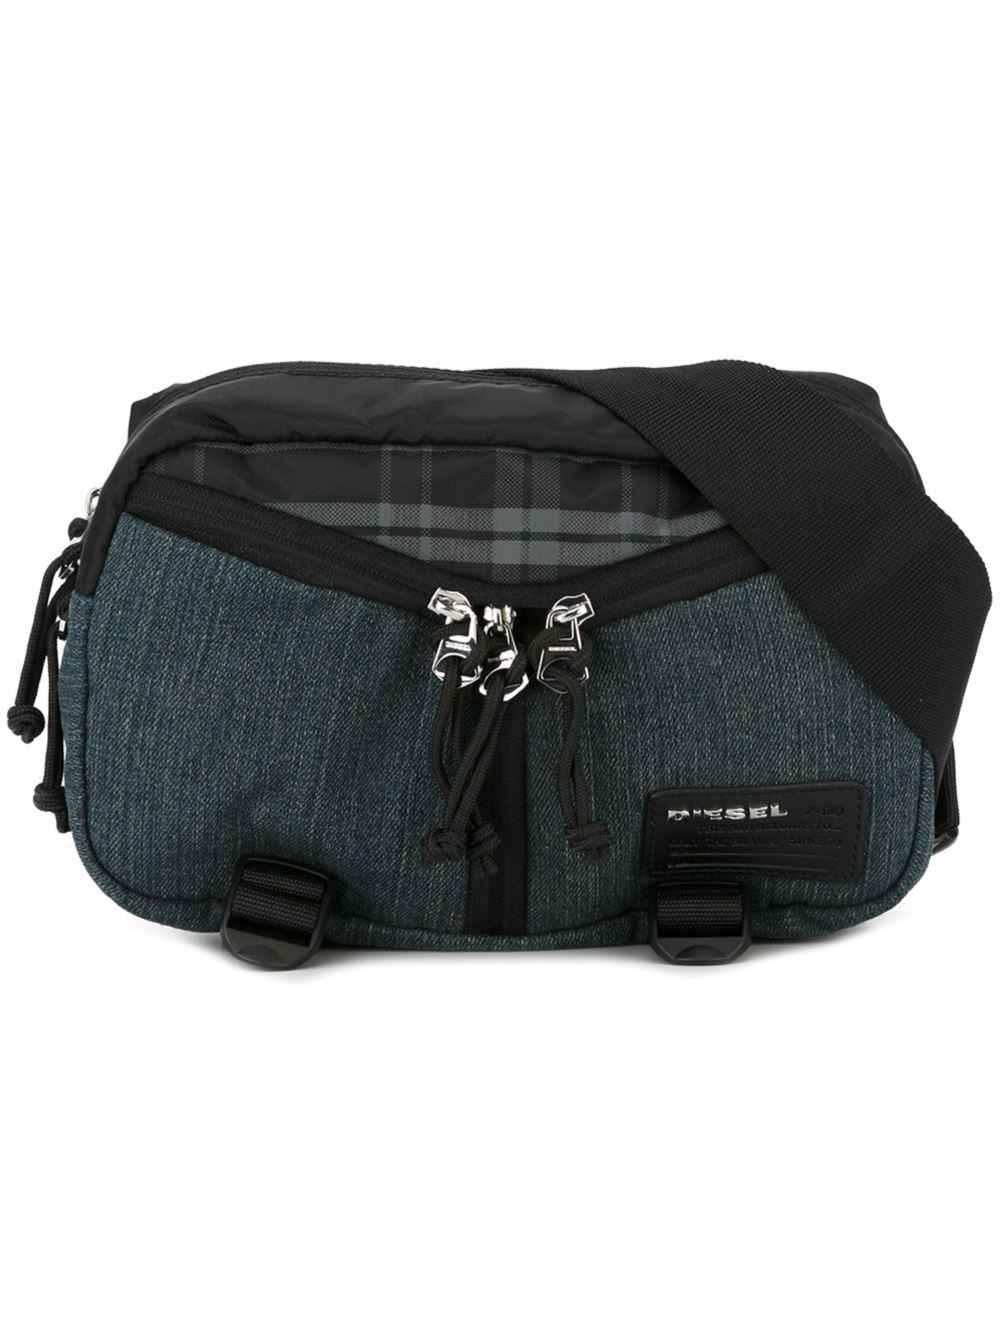 Blue check lock front belt bum bag. Quick view. Add to wishlist. £ Black buckle belt bum bag. Quick view. Add to wishlist. Men. Kids. Homeware. Submit. Your personal details are safe with us. Inside River Island About Us; Careers At River Island;.